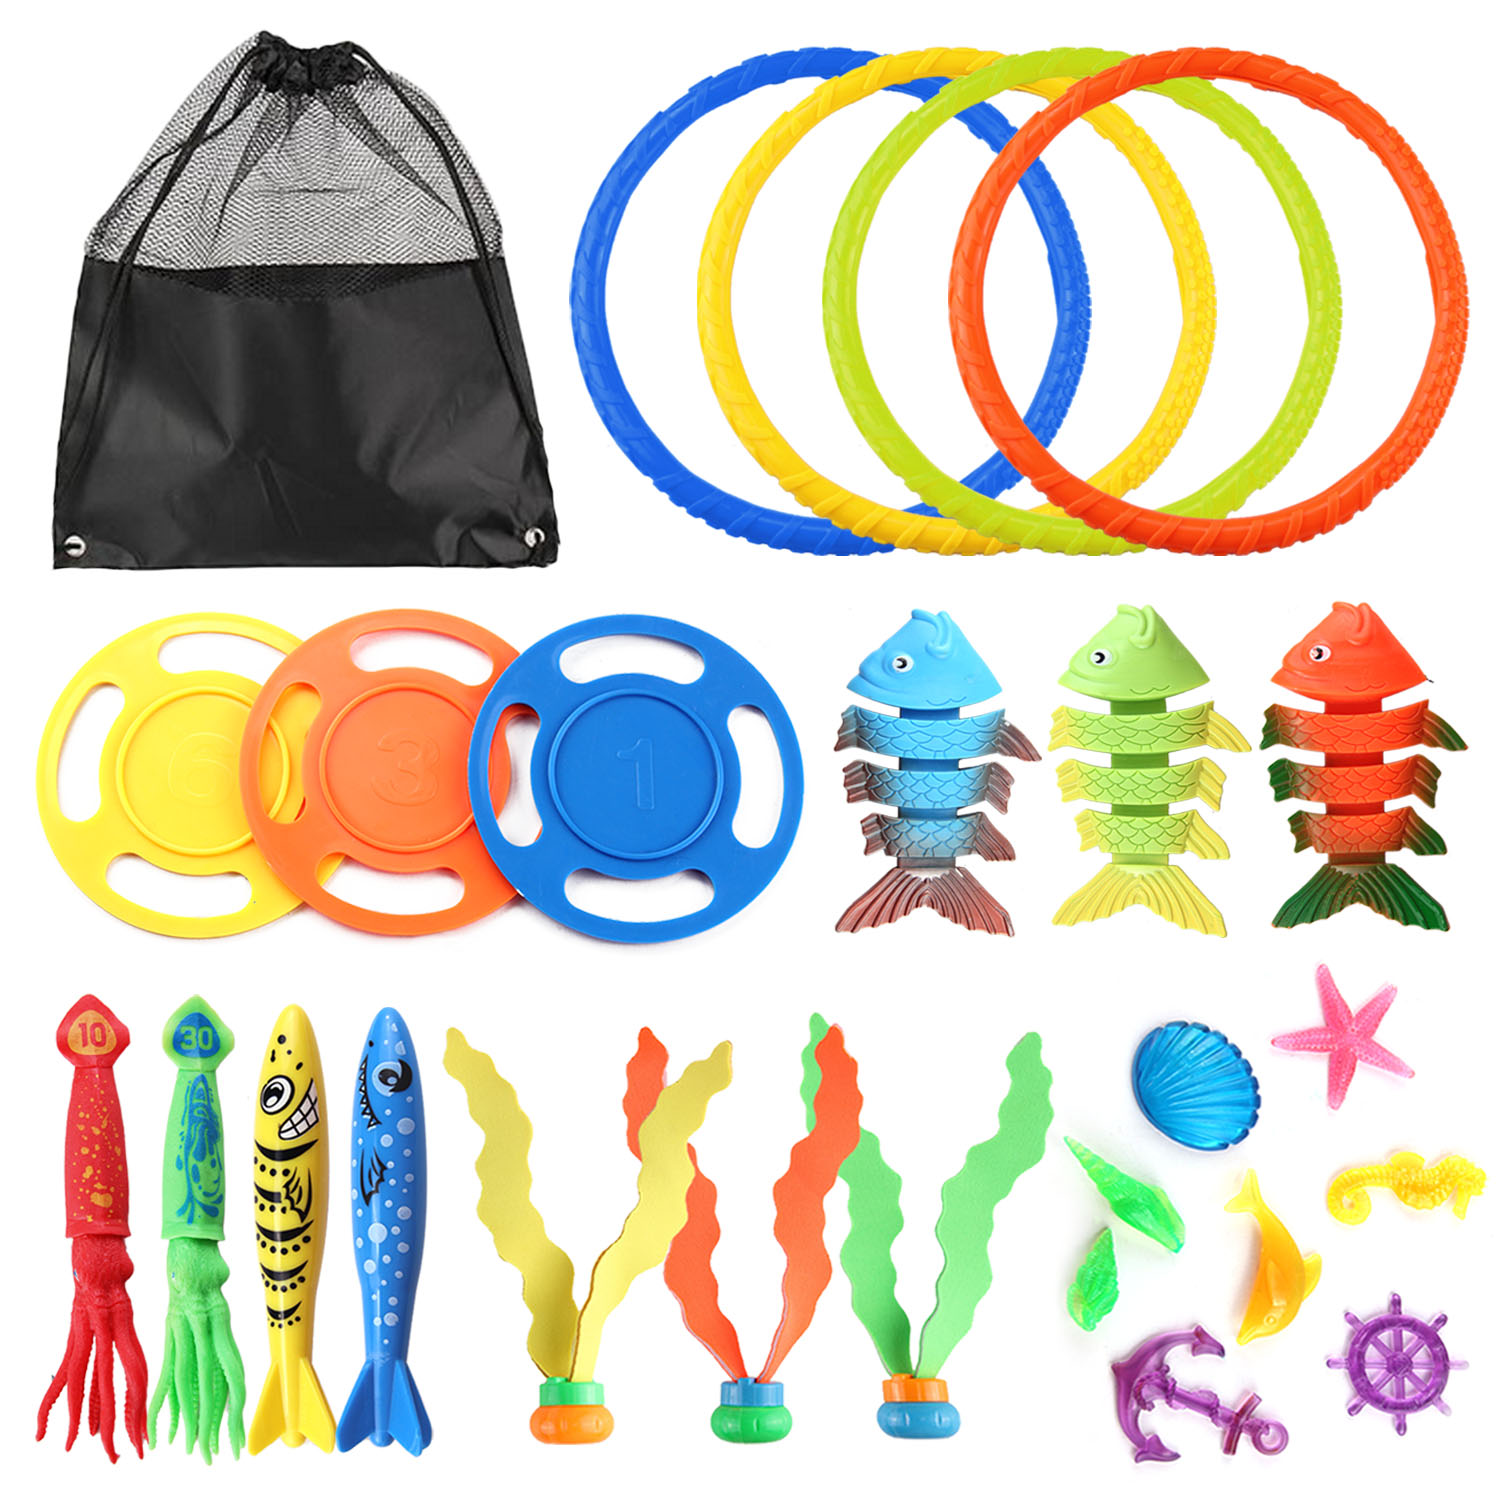 25PCS Funny Kids Diving Toys Set Underwater Water Play Toys With Storage Bag For Boys Girls Summer Games Swimming Pool Party